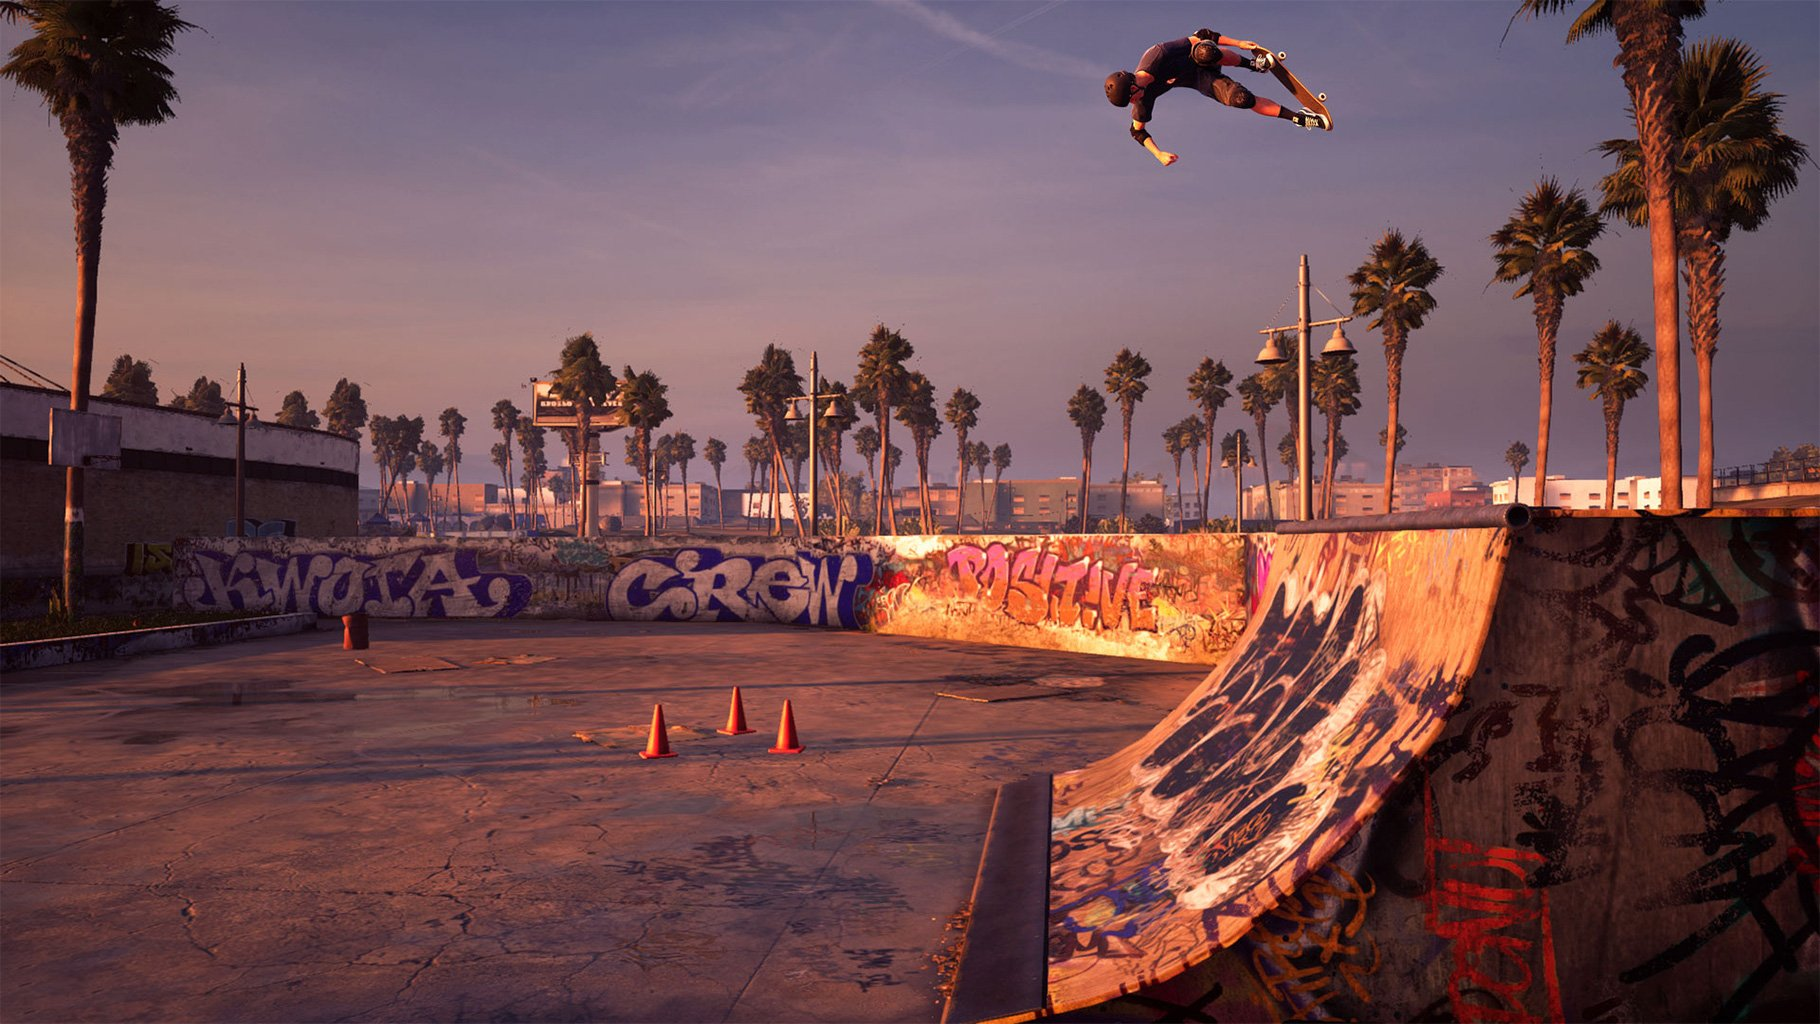 Spotify is streaming the Tony Hawk's Pro Skater 1 and 2 soundtrack screenshot